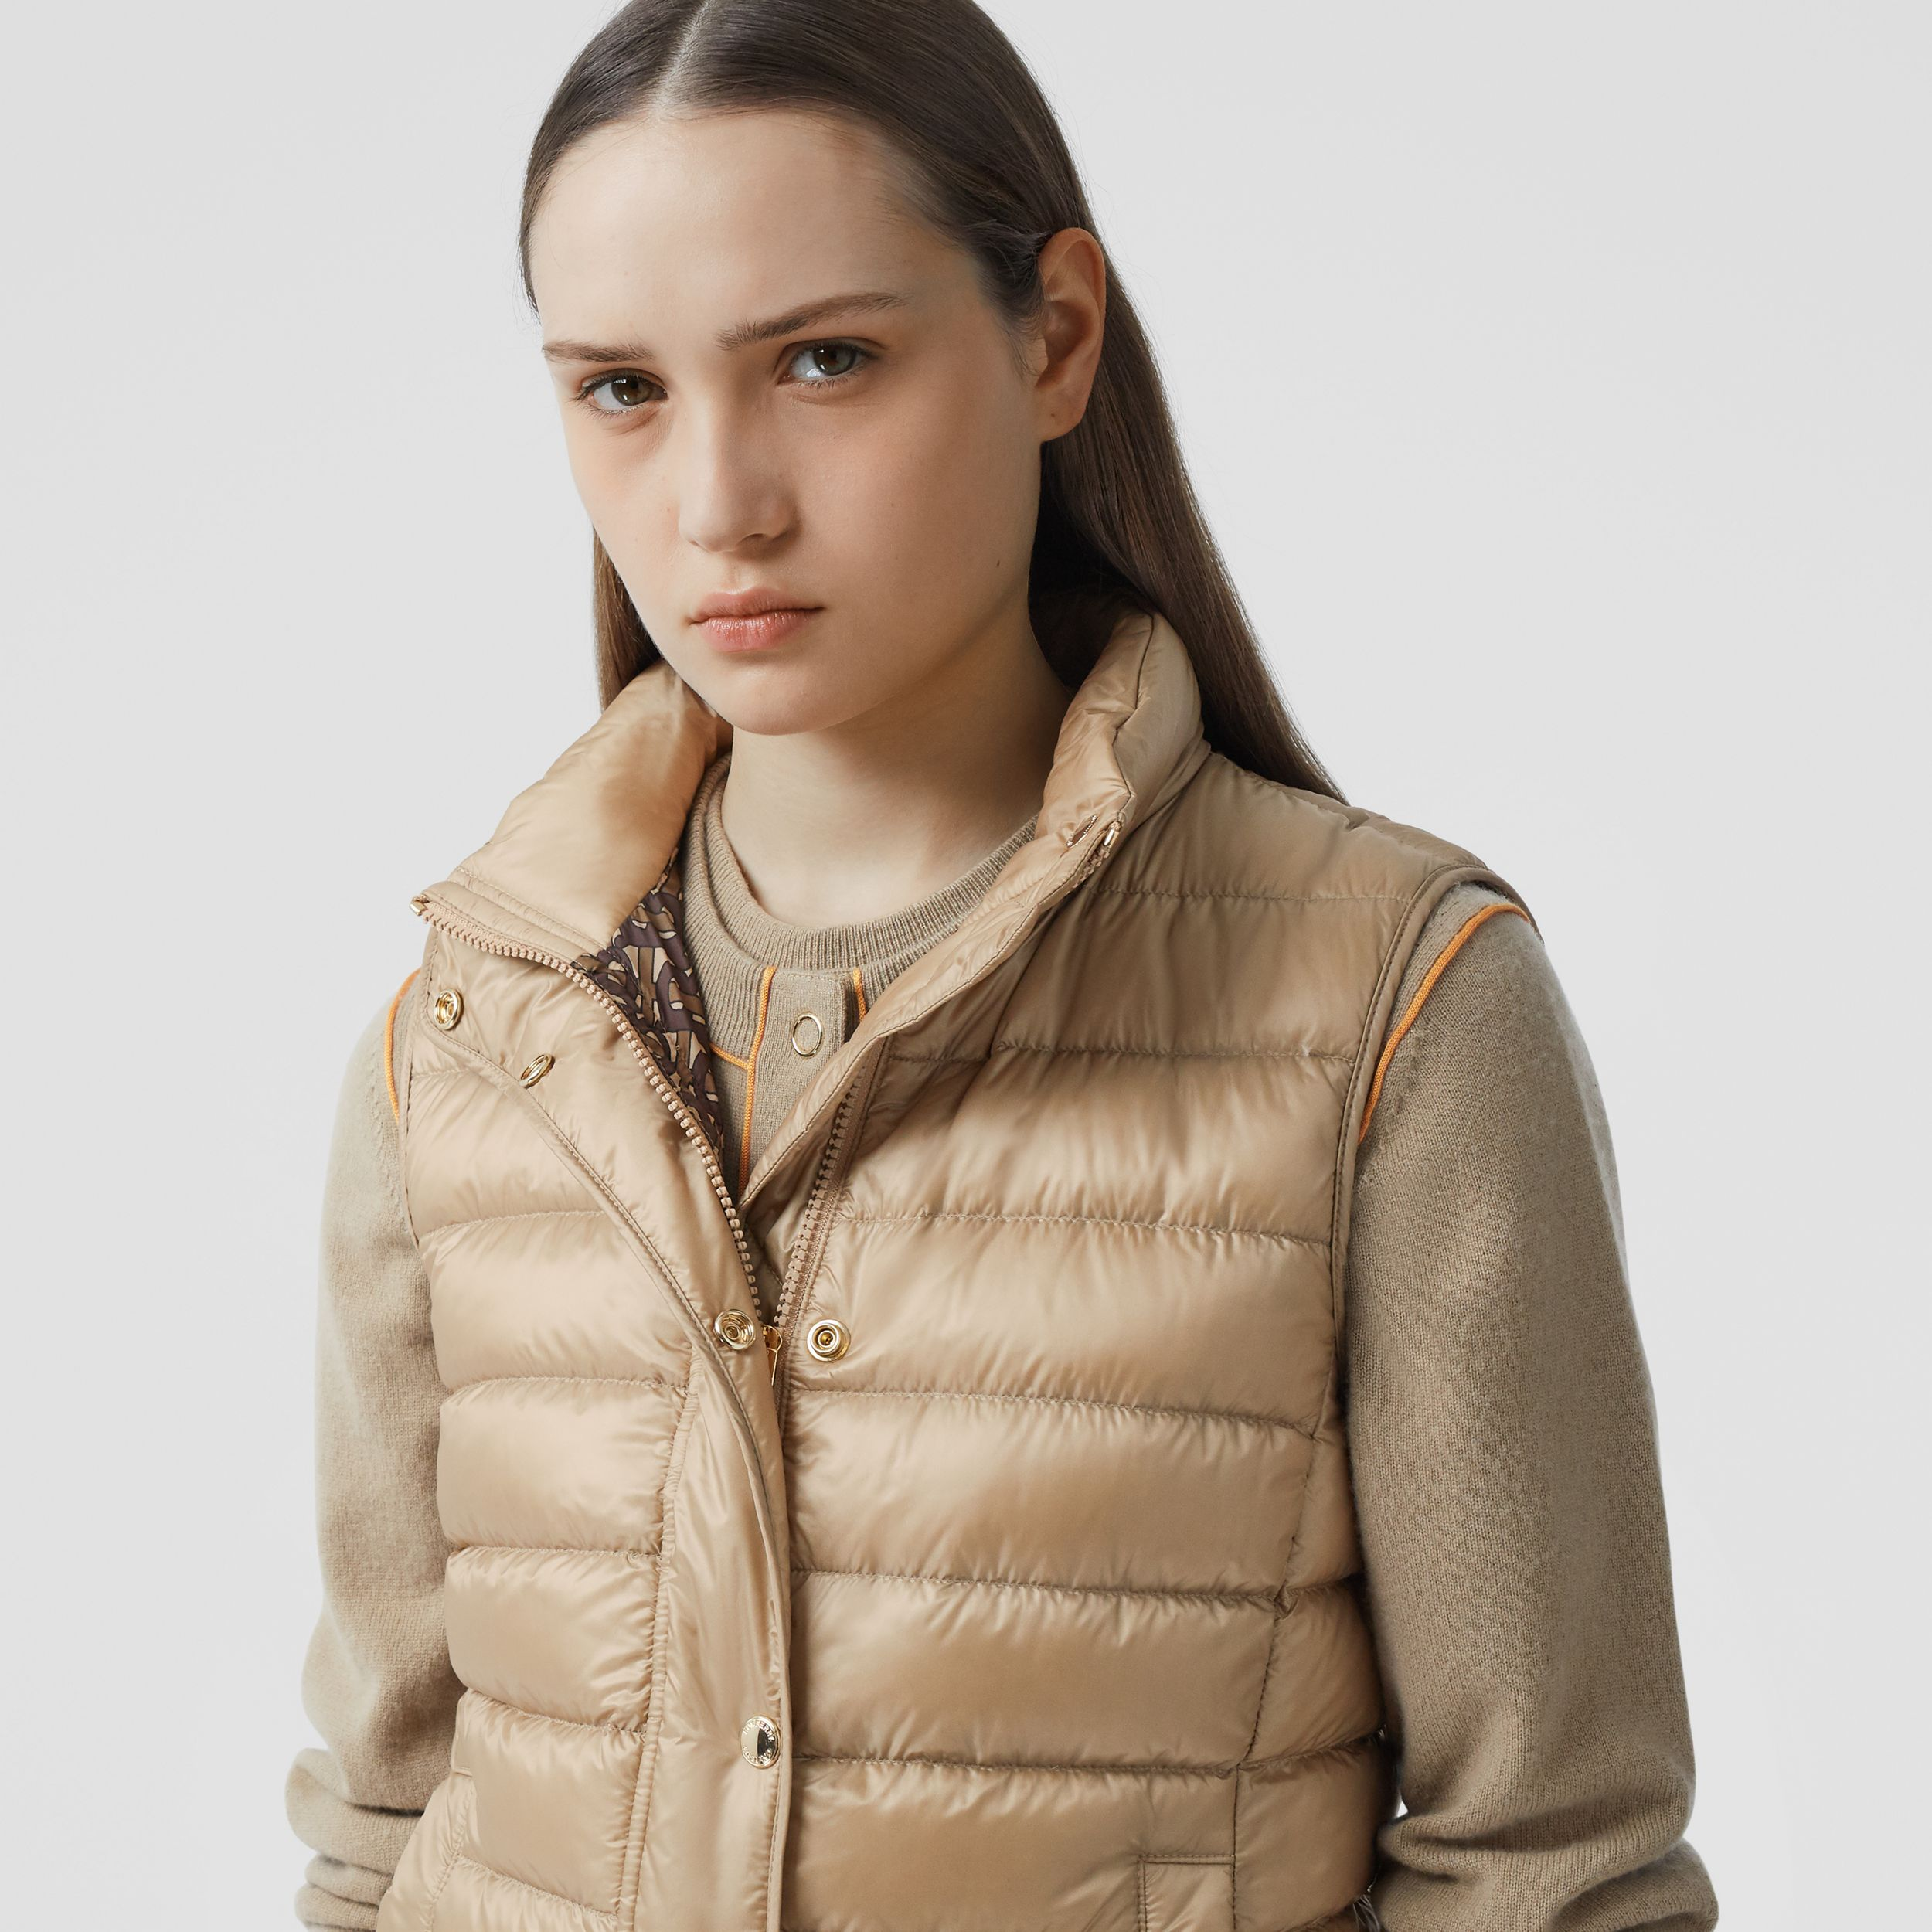 Monogram Print-lined Lightweight Puffer Gilet in Honey - Women | Burberry - 2